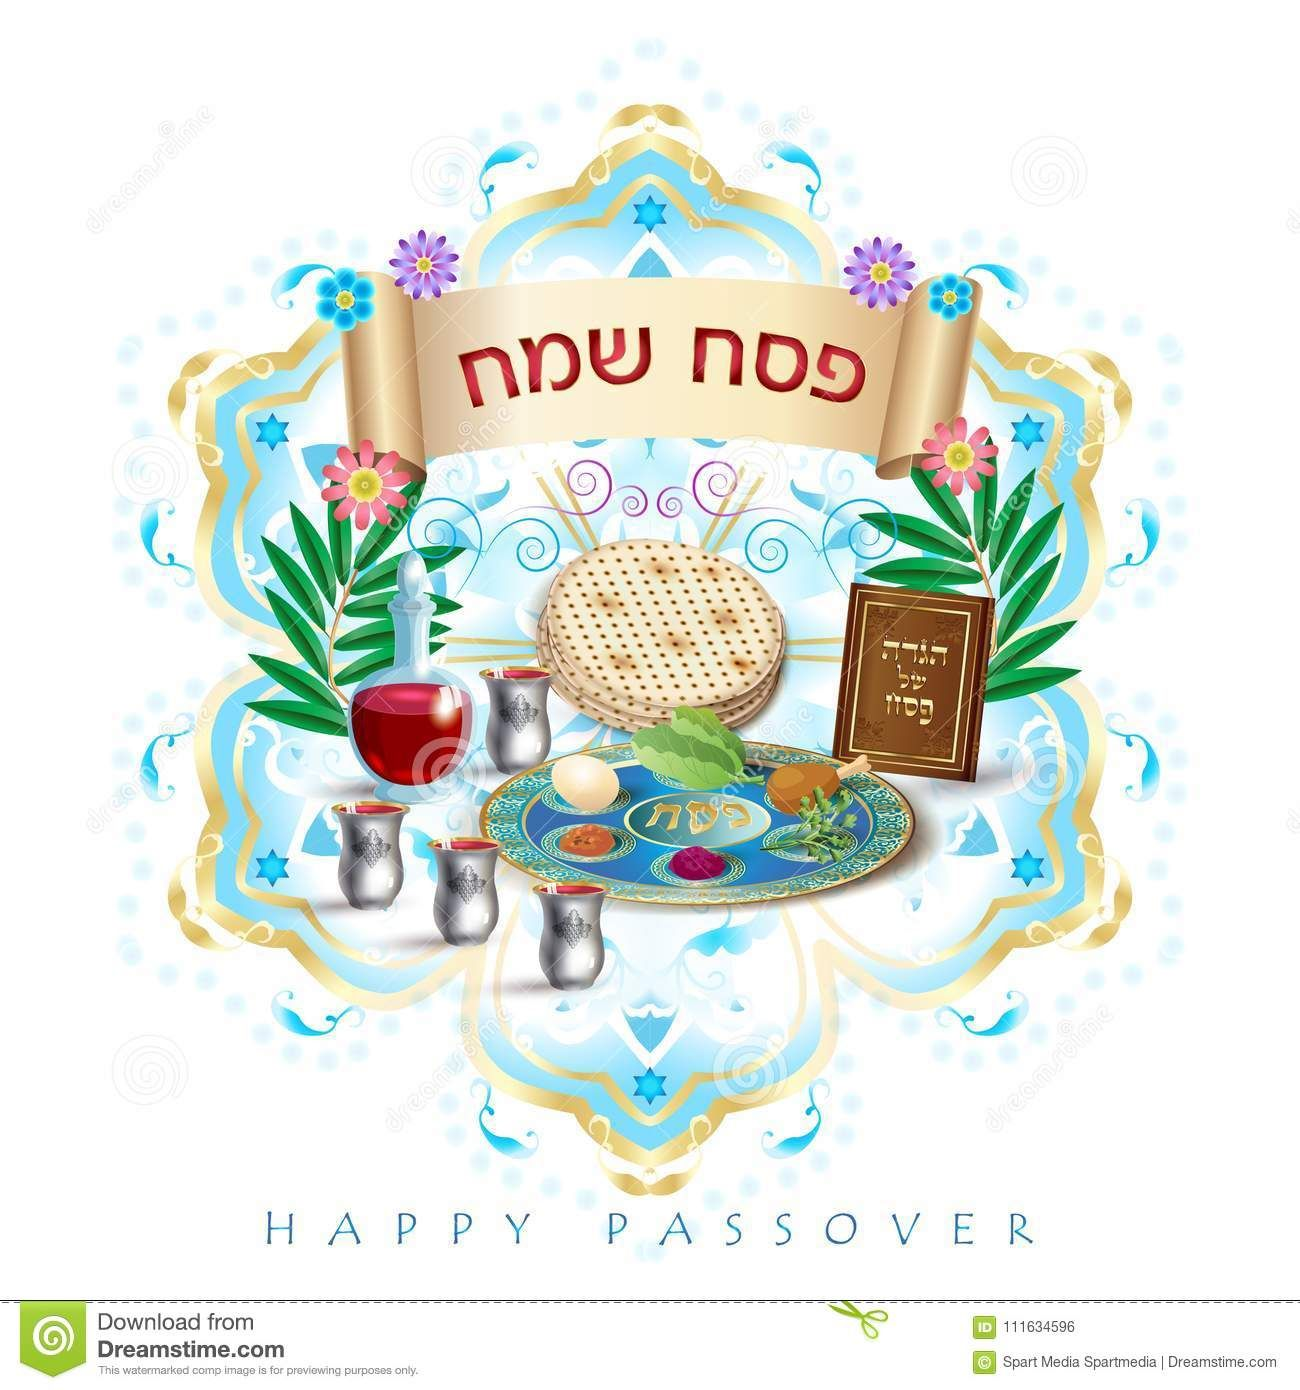 2018 Happy Passover Hebrew Lettering Jewish Holiday Symbols Icons